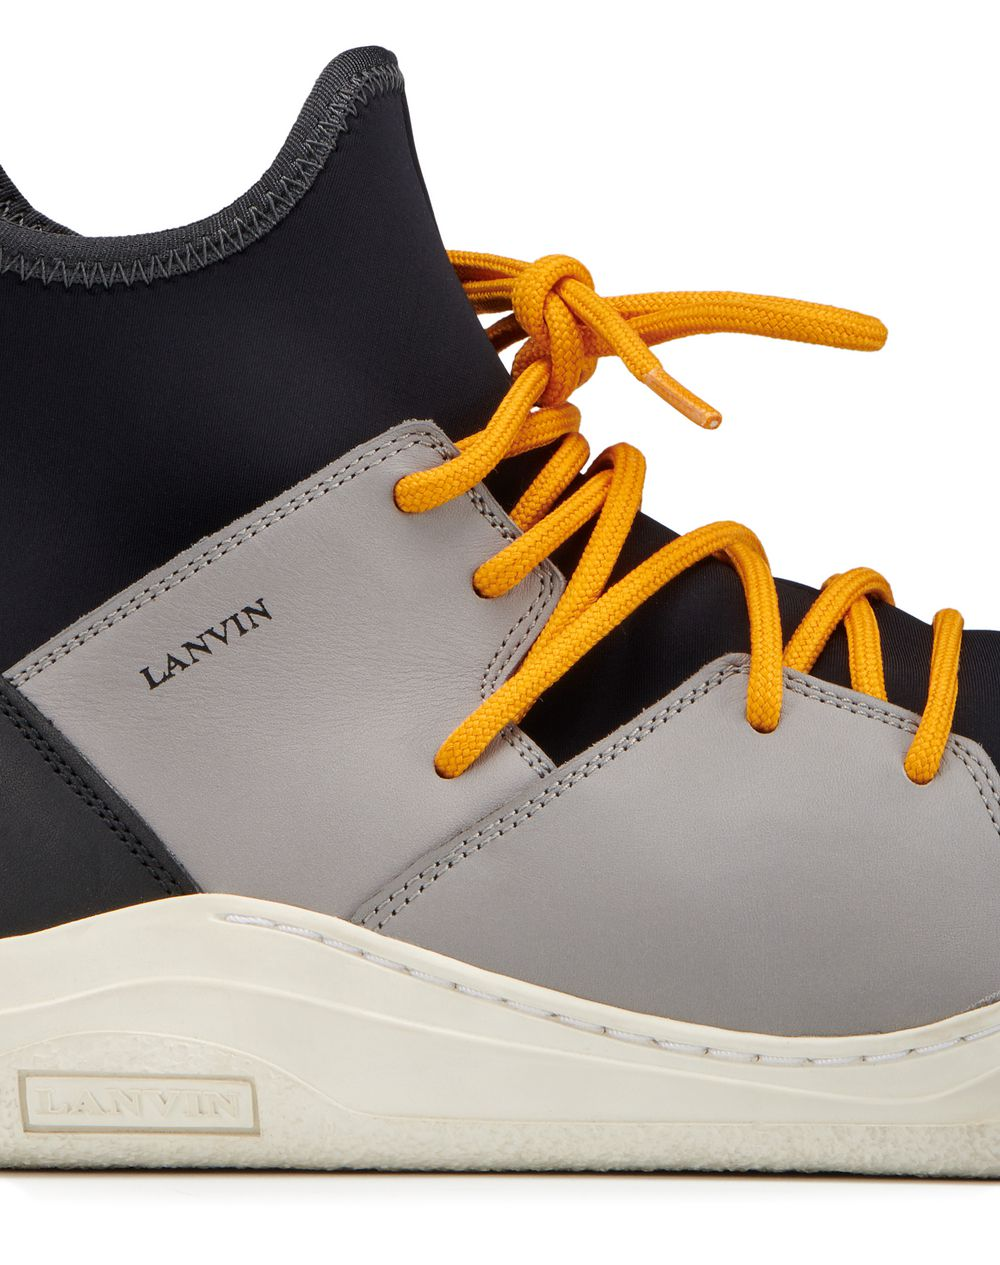 HIGH-TOP-SNEAKERS DIVING - Lanvin